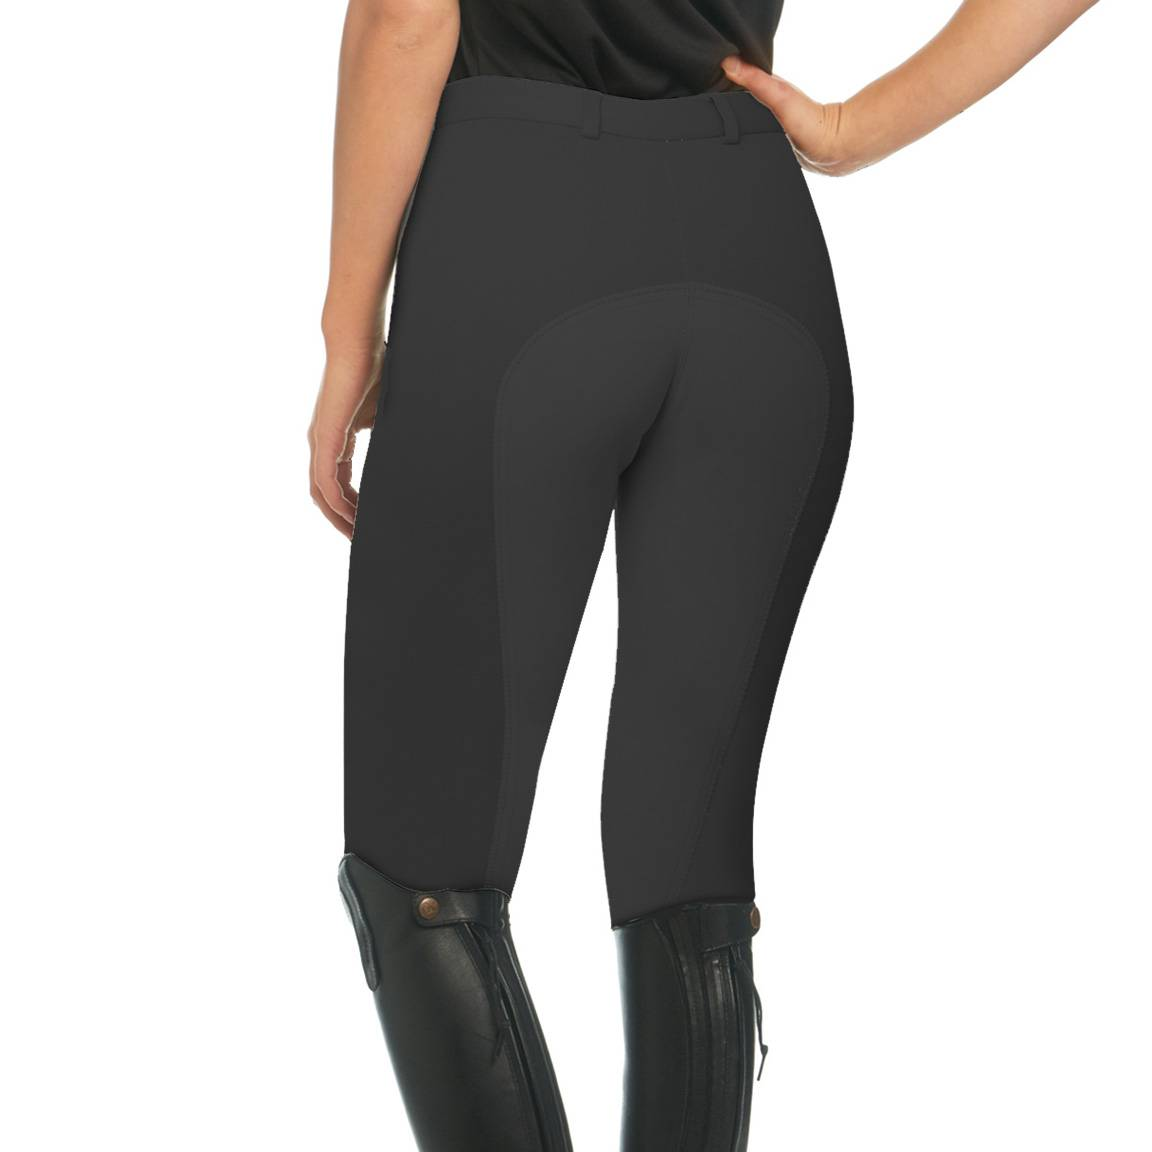 EquiStar Ladies Front Zip Full Seat Breeches